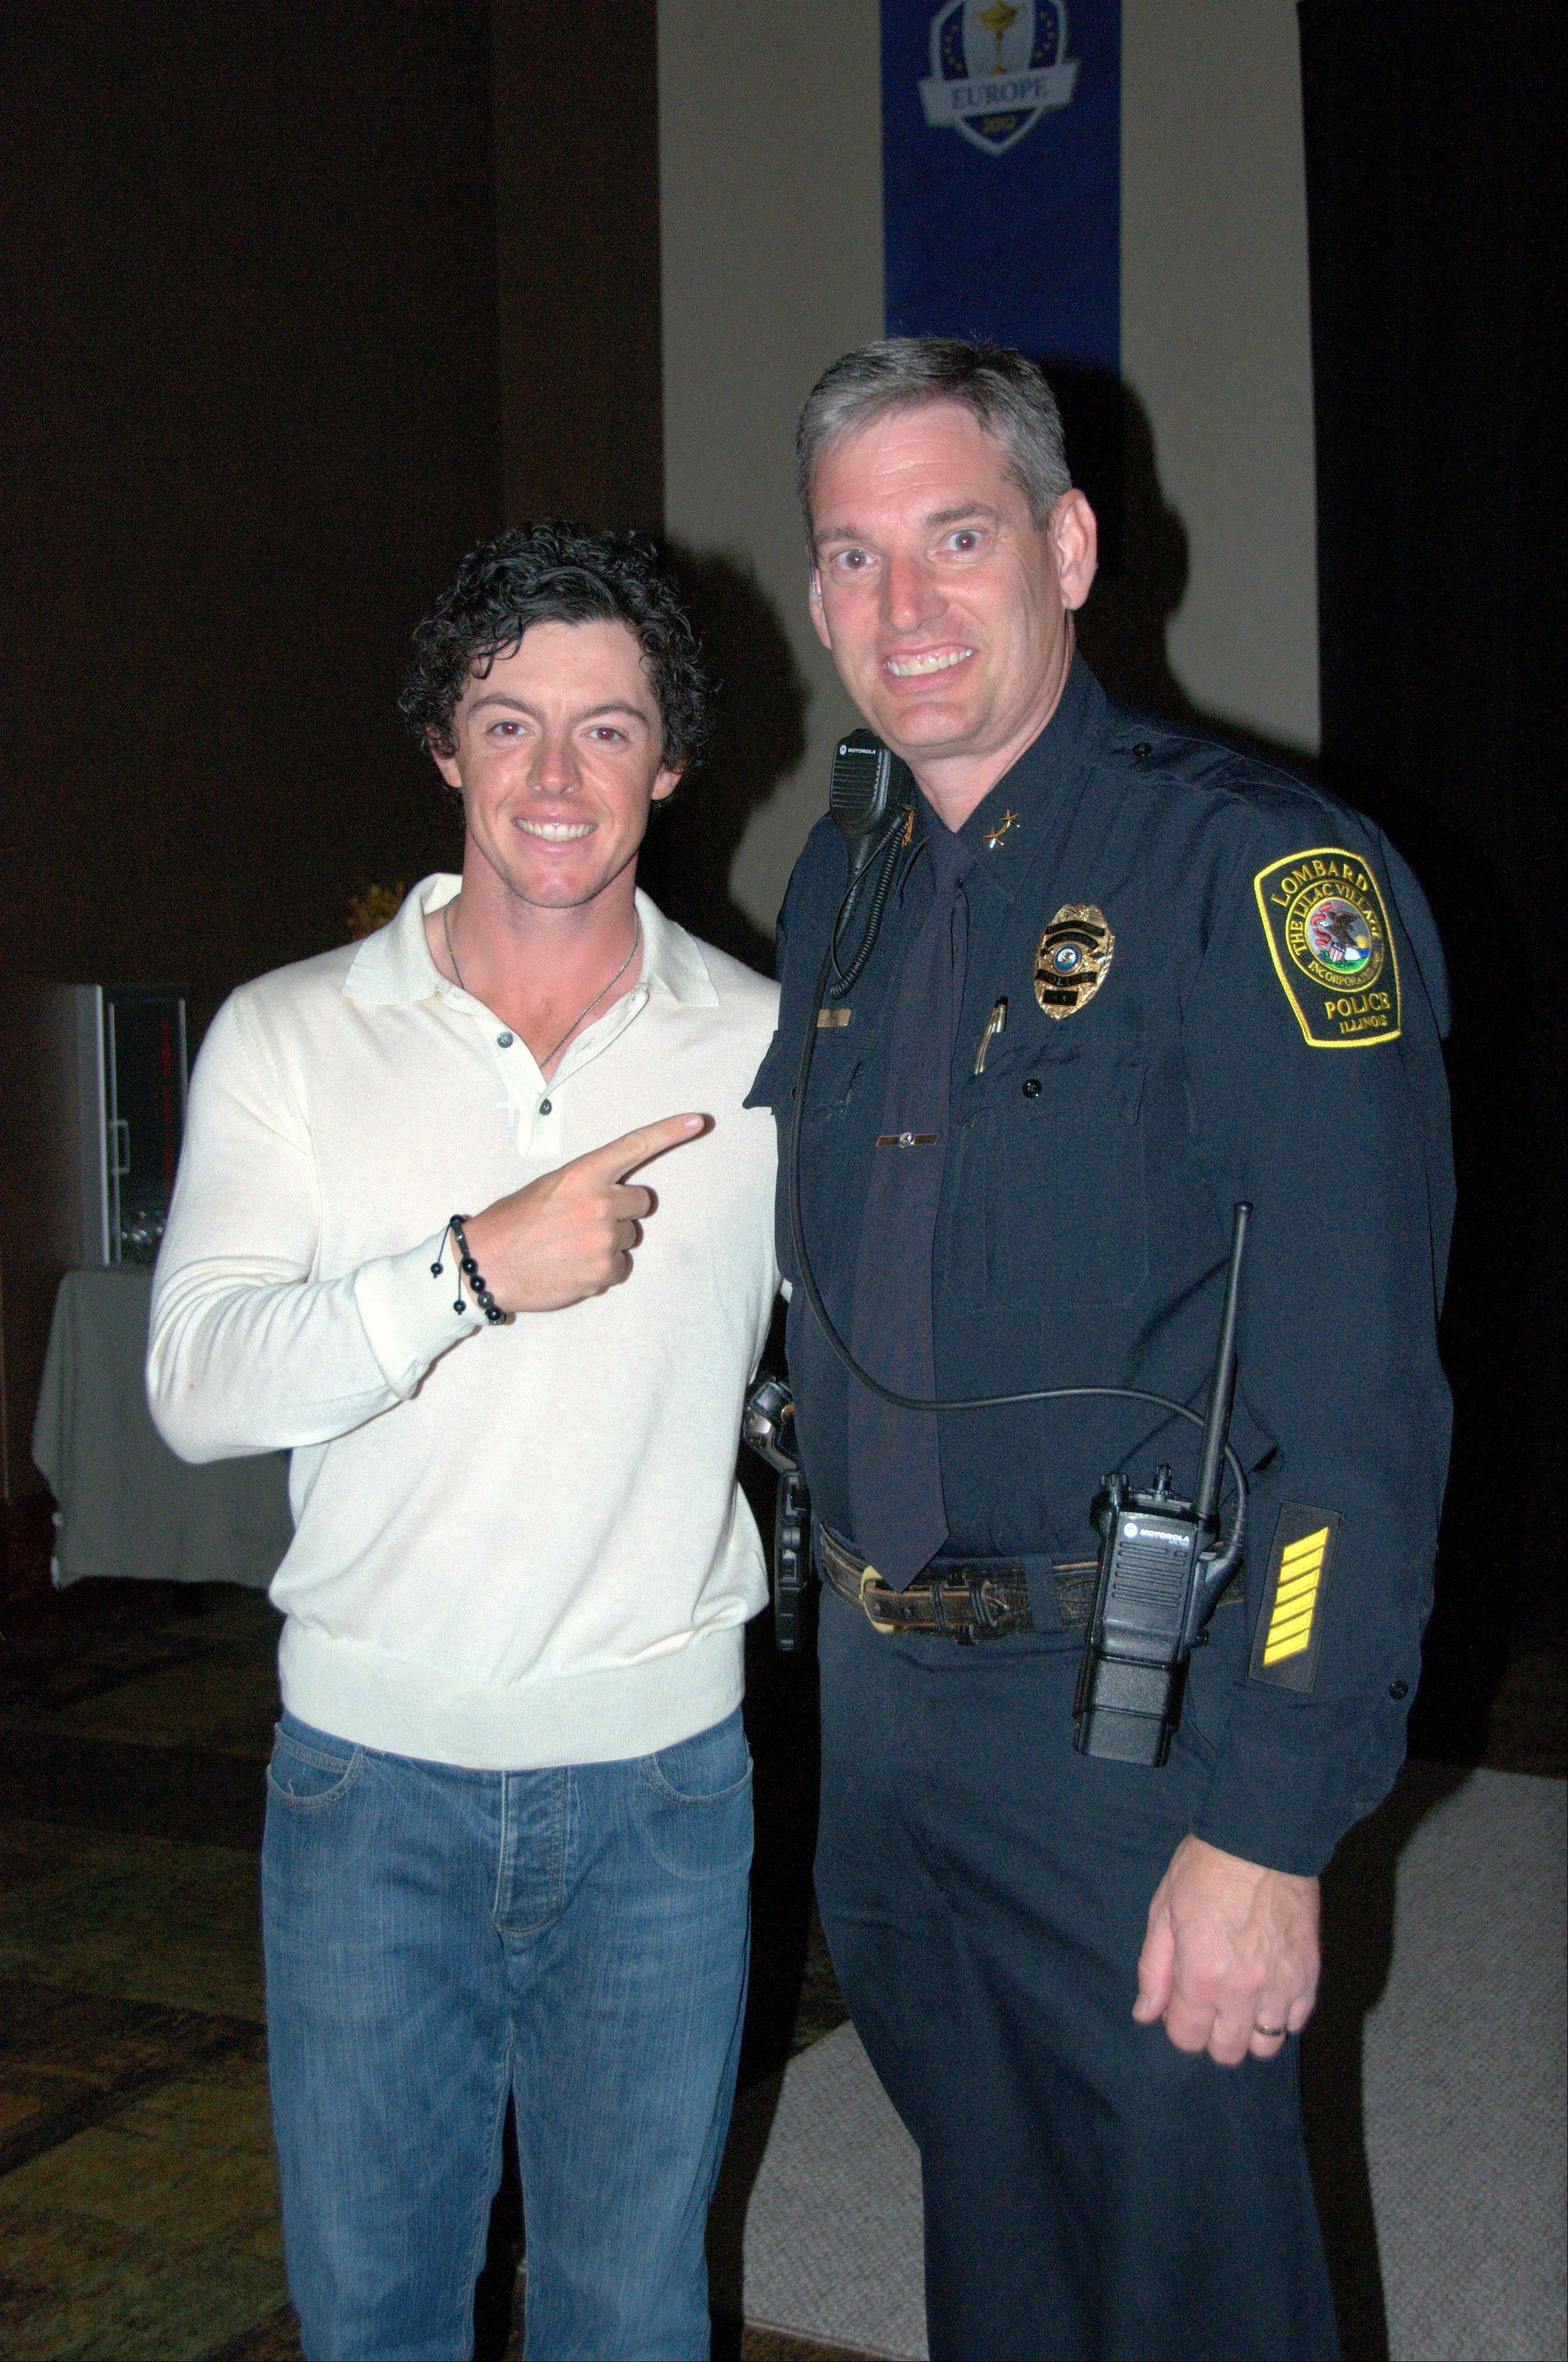 Irish golfer Rory McIlroy, left, credits Lombard Deputy Chief Pat Rollins with getting him to the Ryder Cup on time last fall. Rollins is going to be Sughar Grove's new police chief.